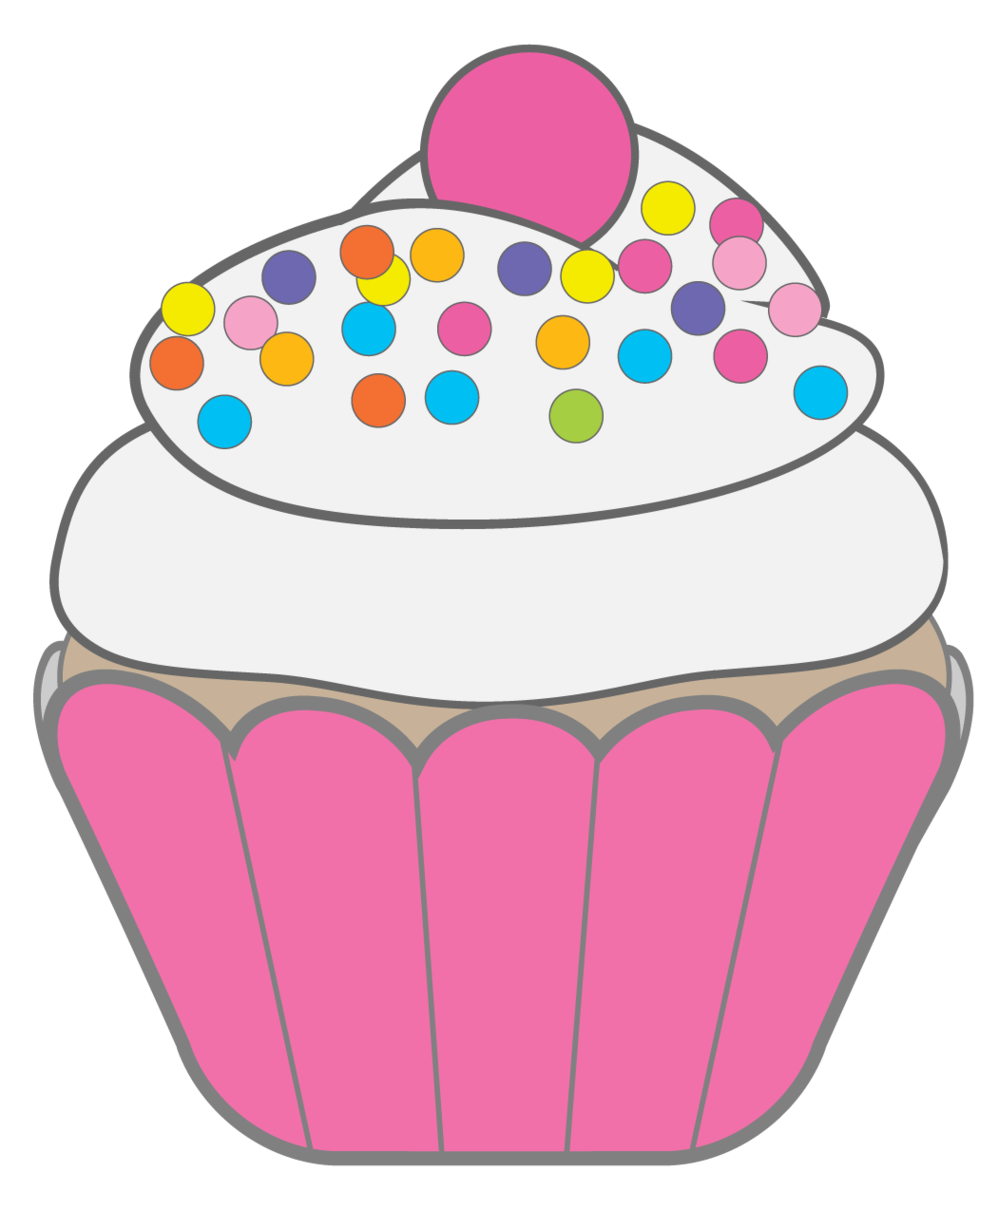 Red Muffin Clipart Clip art of Muffin Clipart #7013 — Clipartwork.